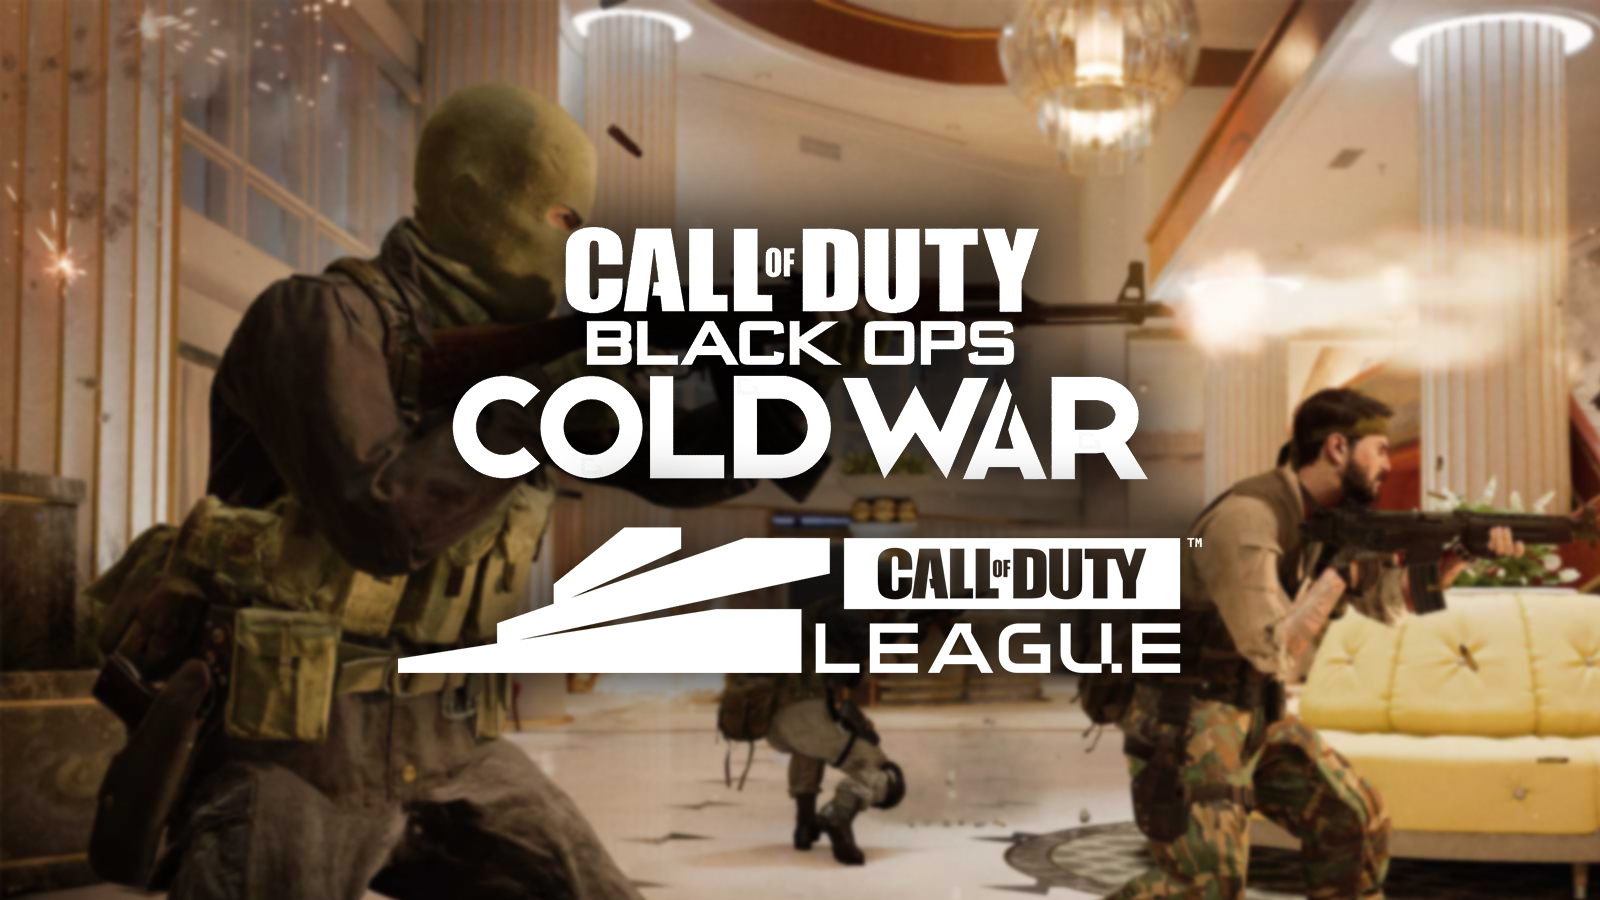 Call of Duty League Black Ops Cold War